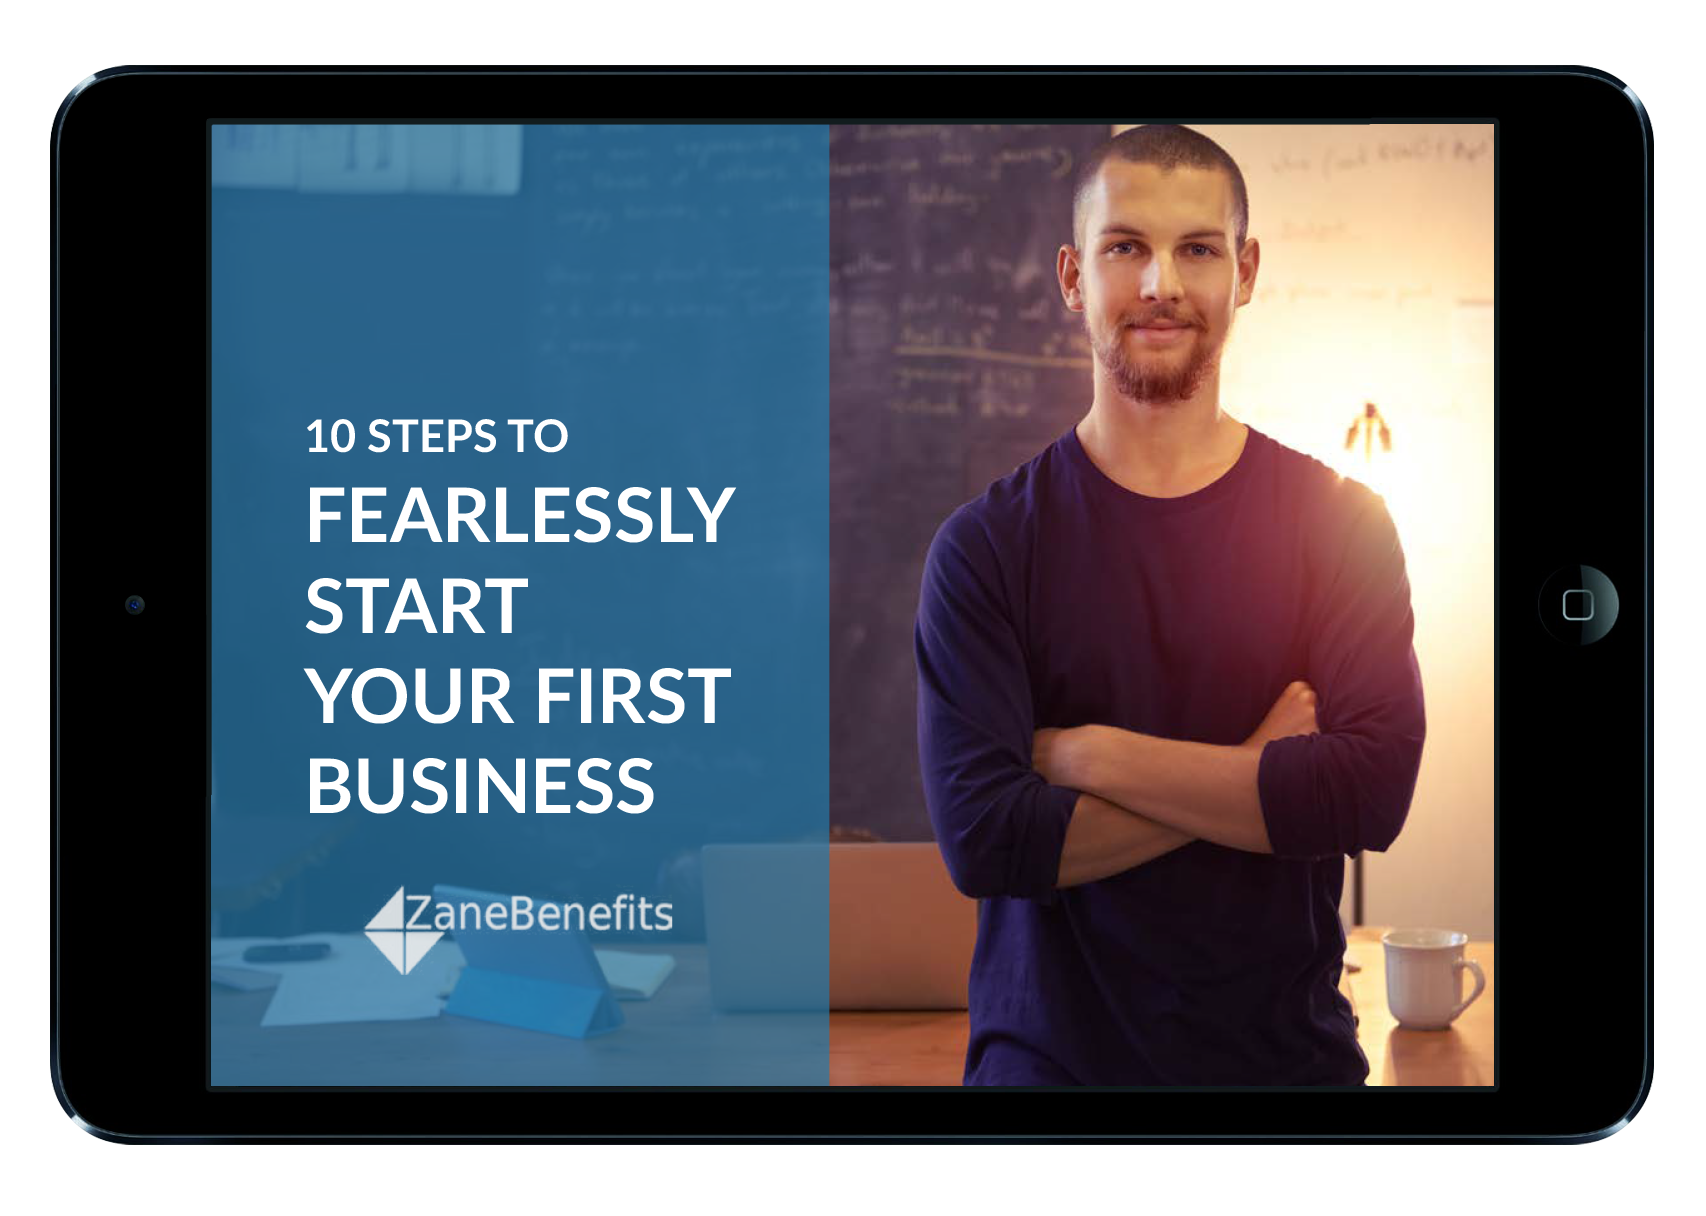 10 Steps to Fearlessly Start Your First Business